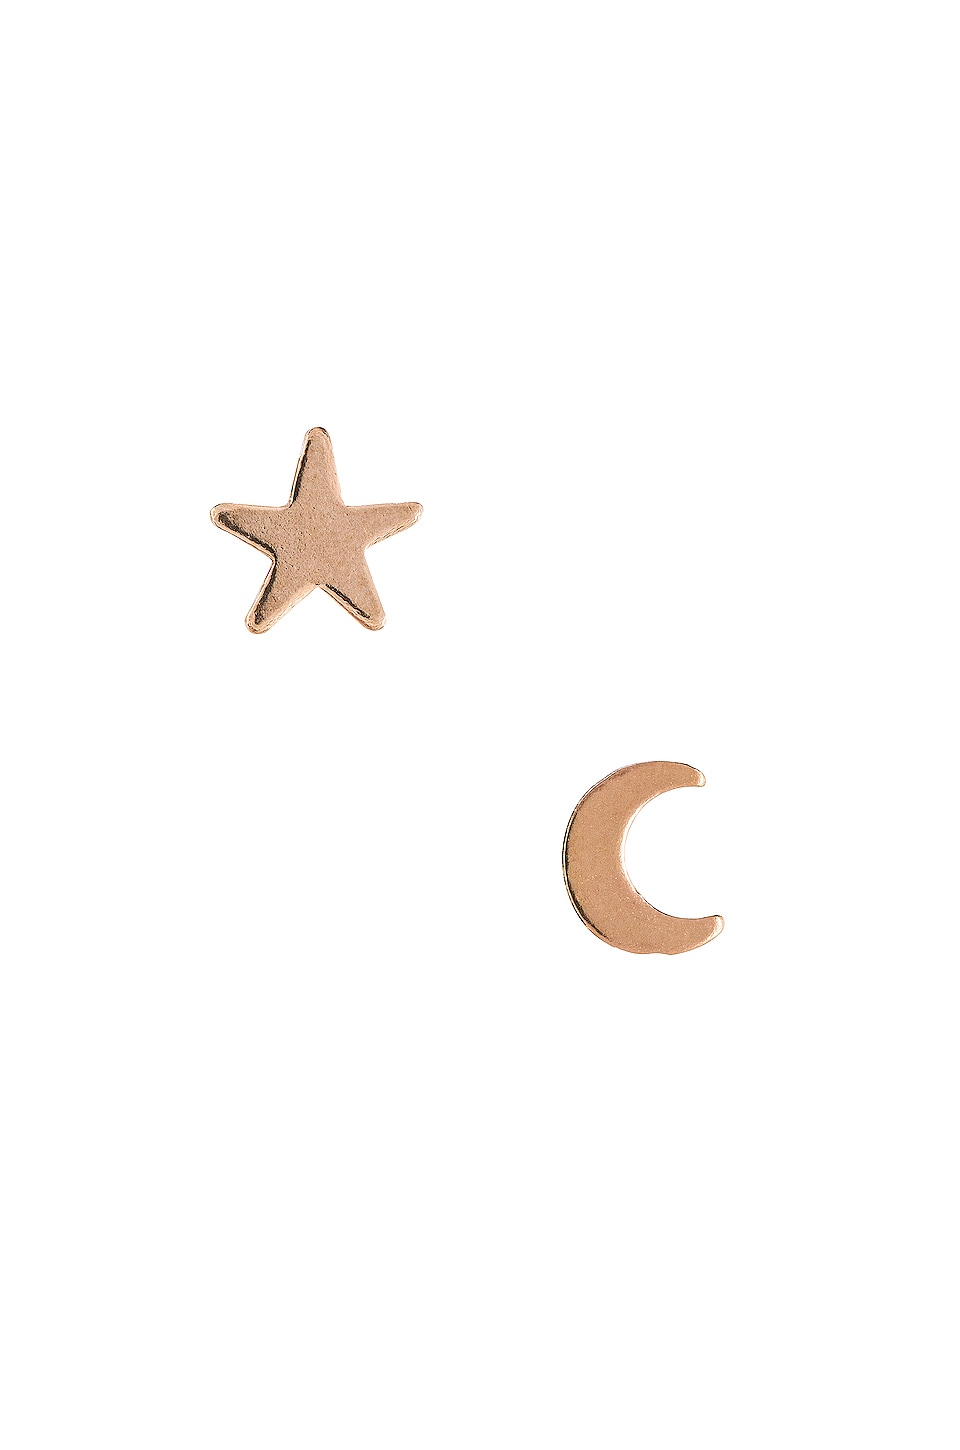 Natalie B Jewelry Moon & Star Studs in Gold